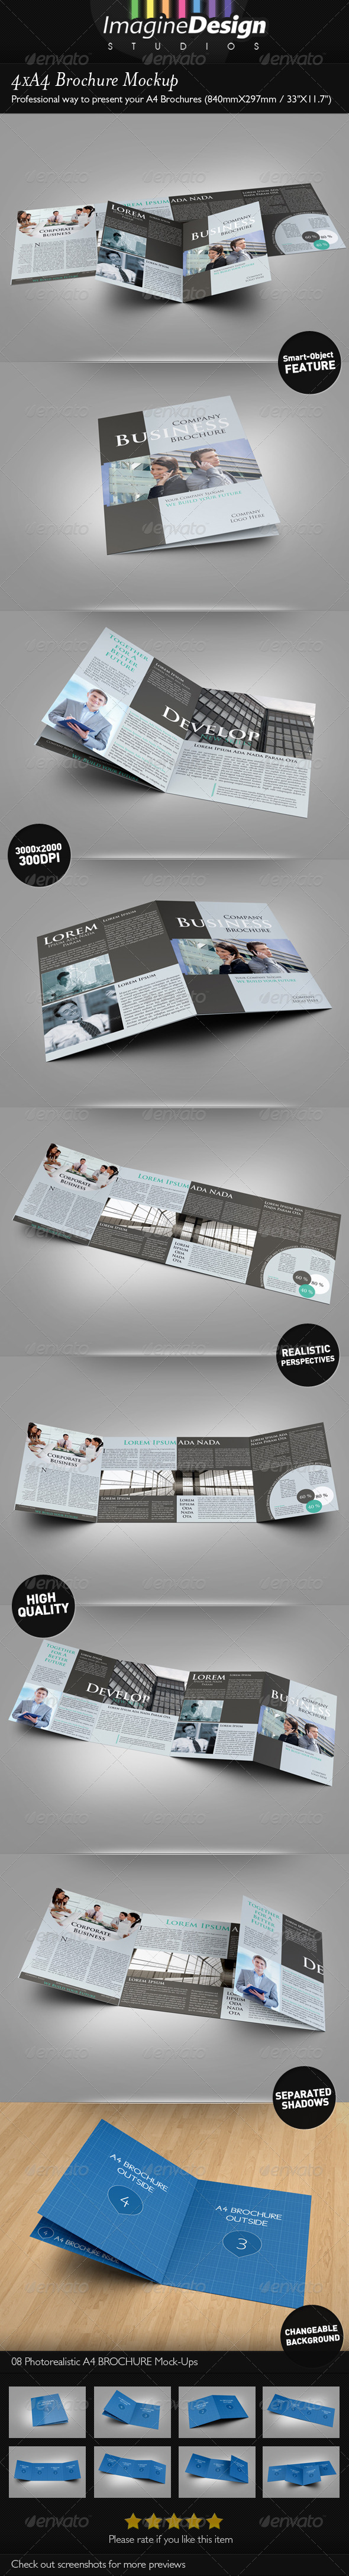 GraphicRiver 4xA4 Brochure Mock-up 3948387